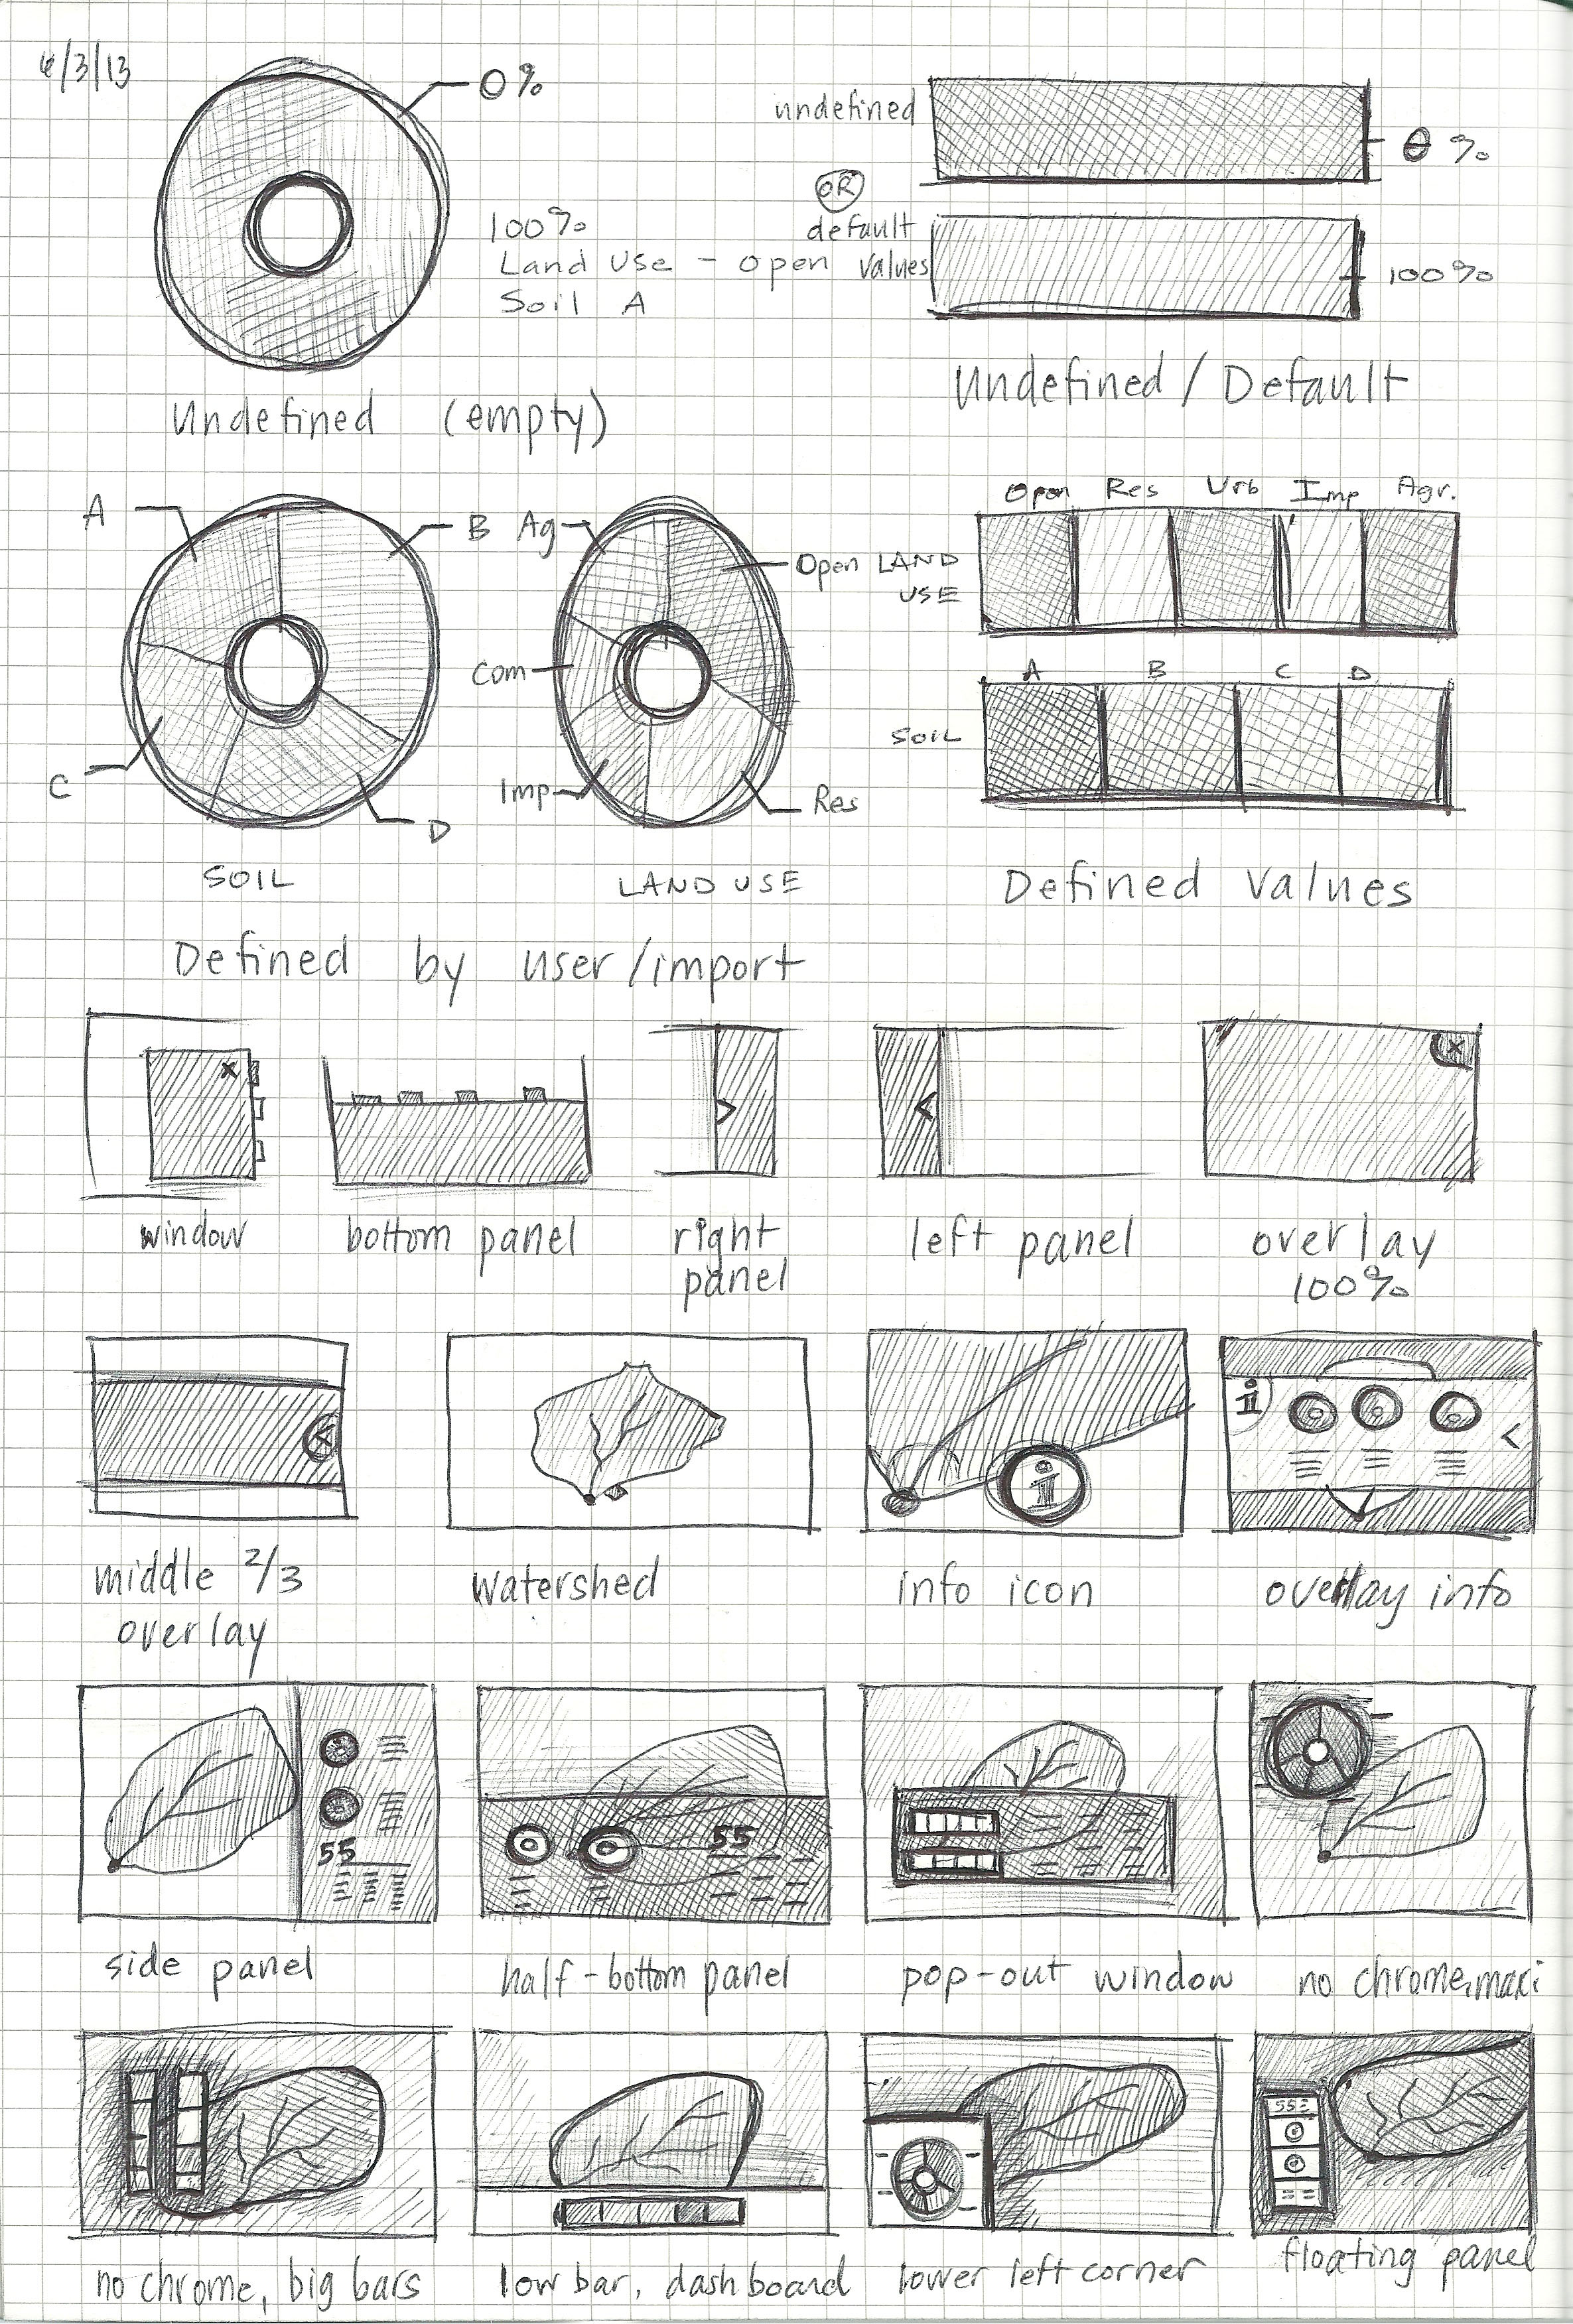 Sketched thumbnails of various layouts for watershed analysis data.